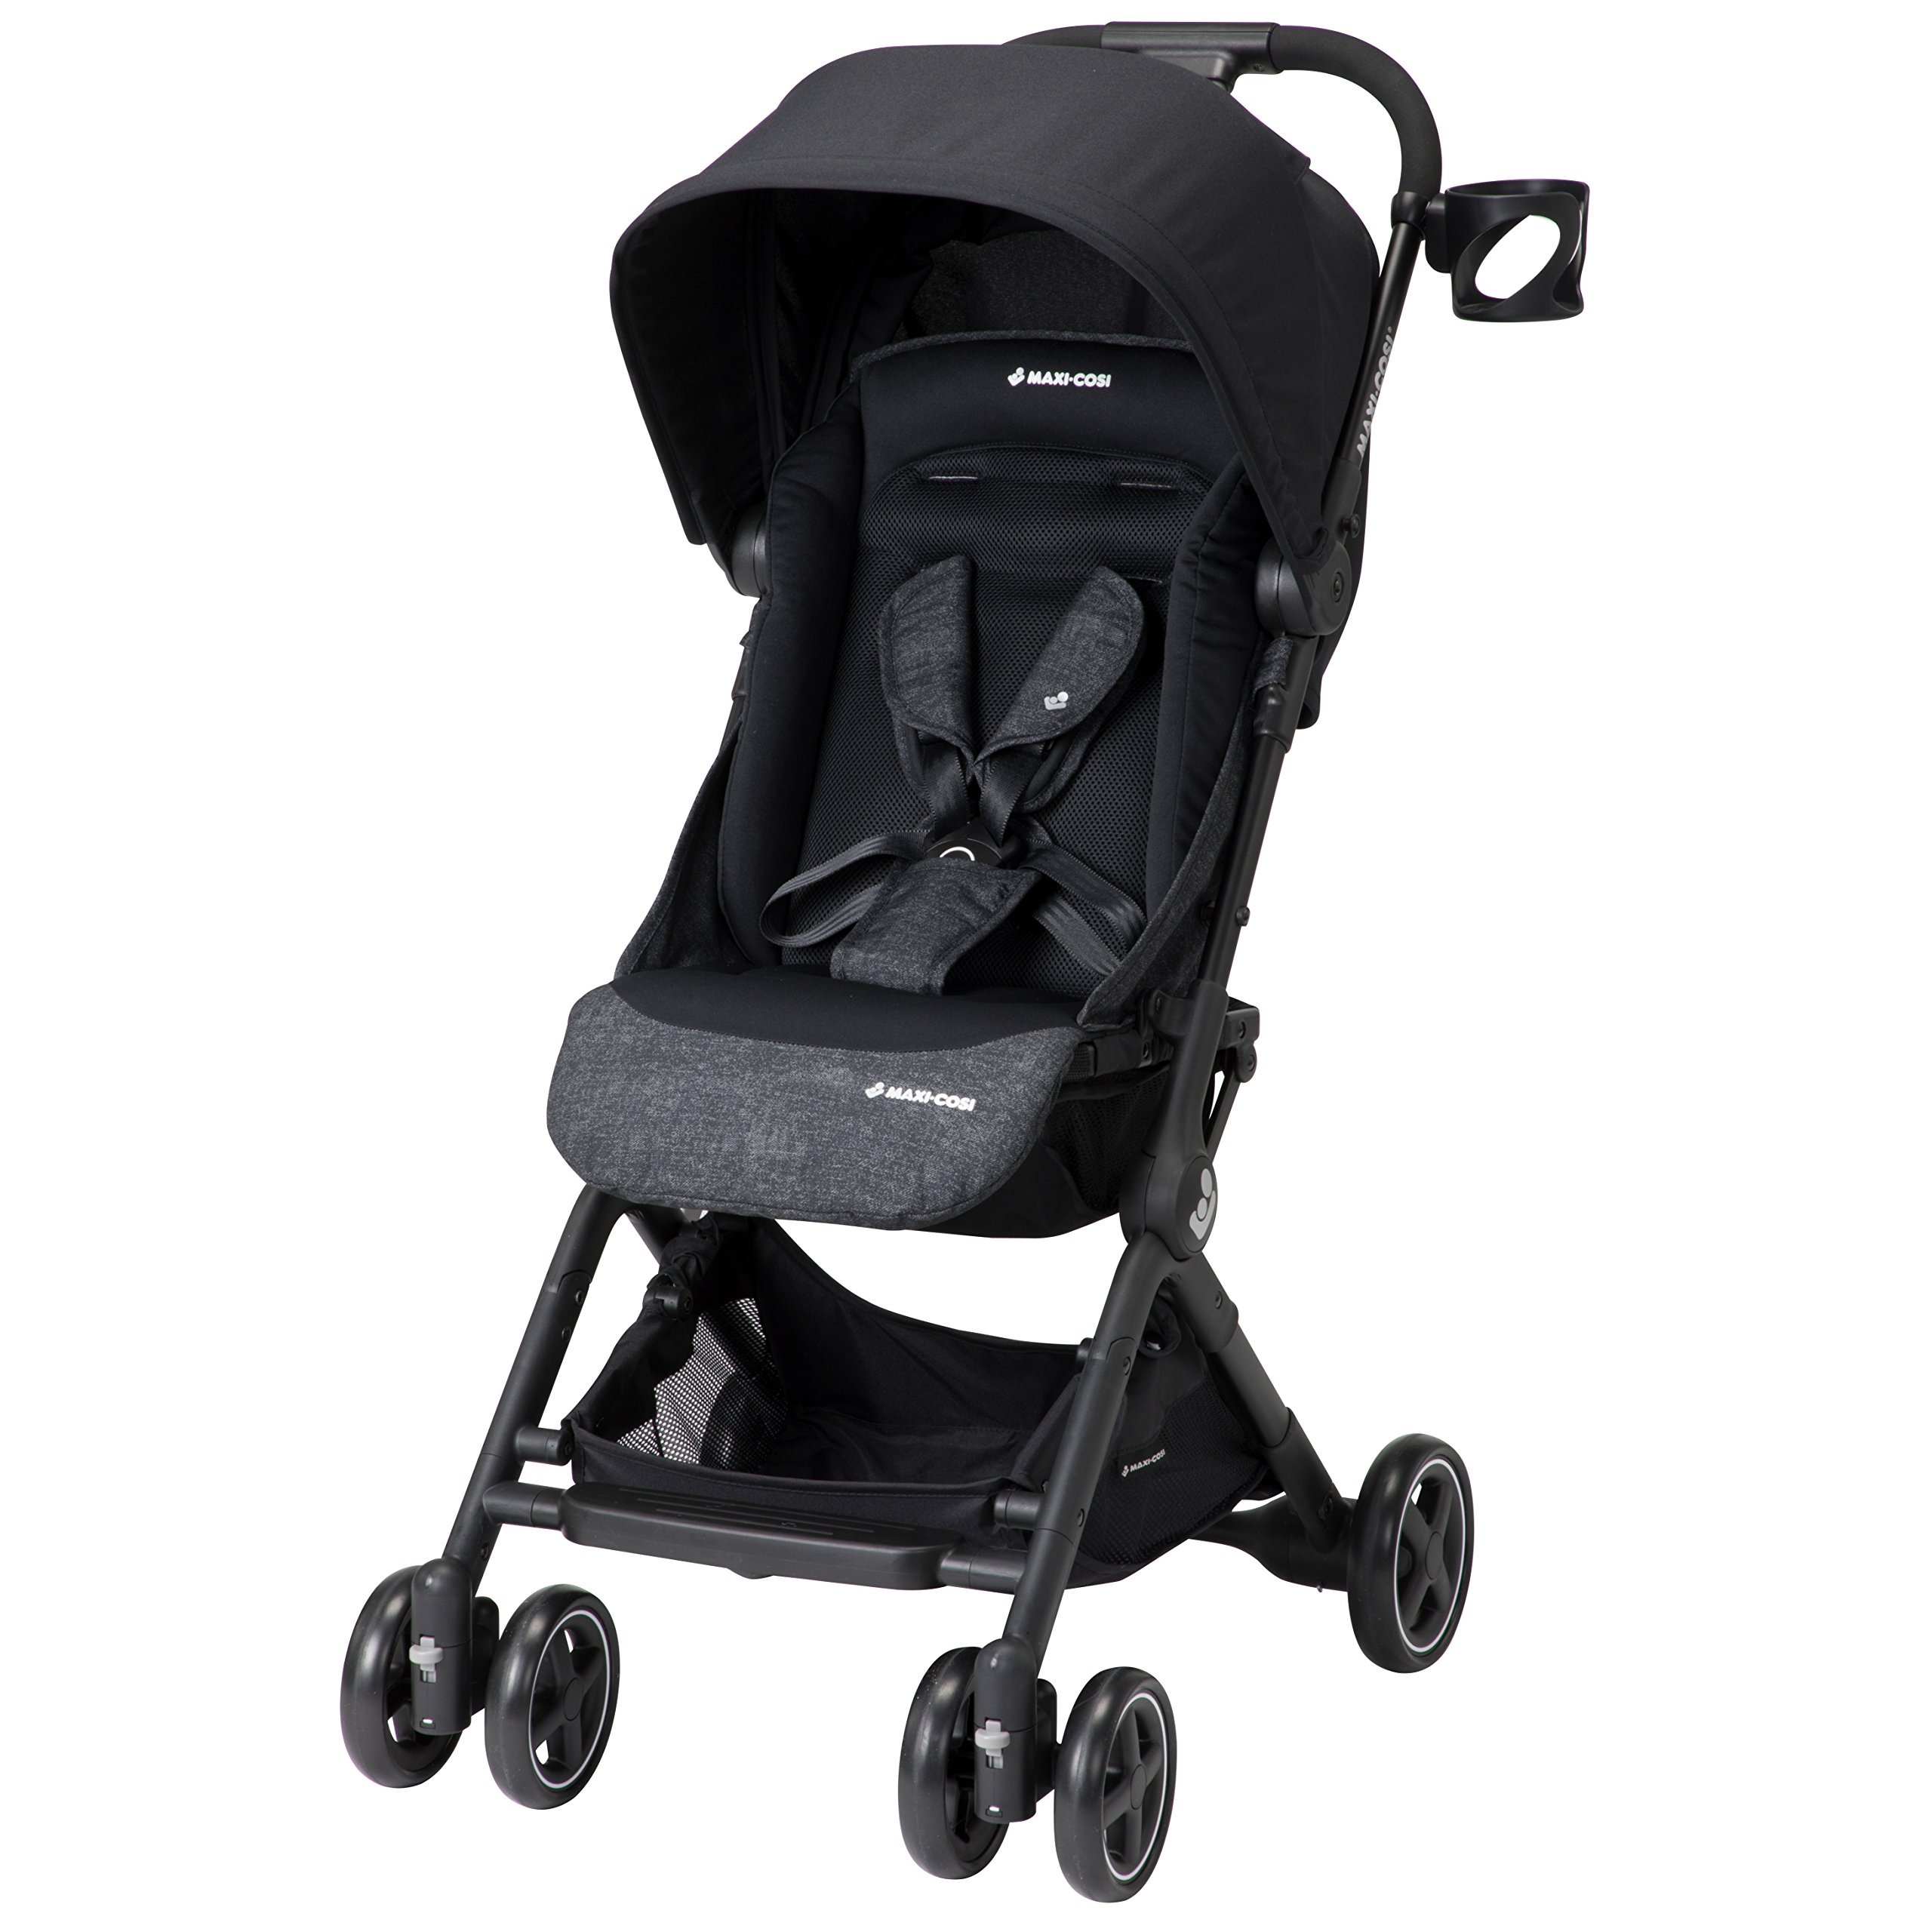 Maxi-Cosi Lara Lightweight Ultra Compact Stroller, Nomad Black, One Size by Maxi-Cosi